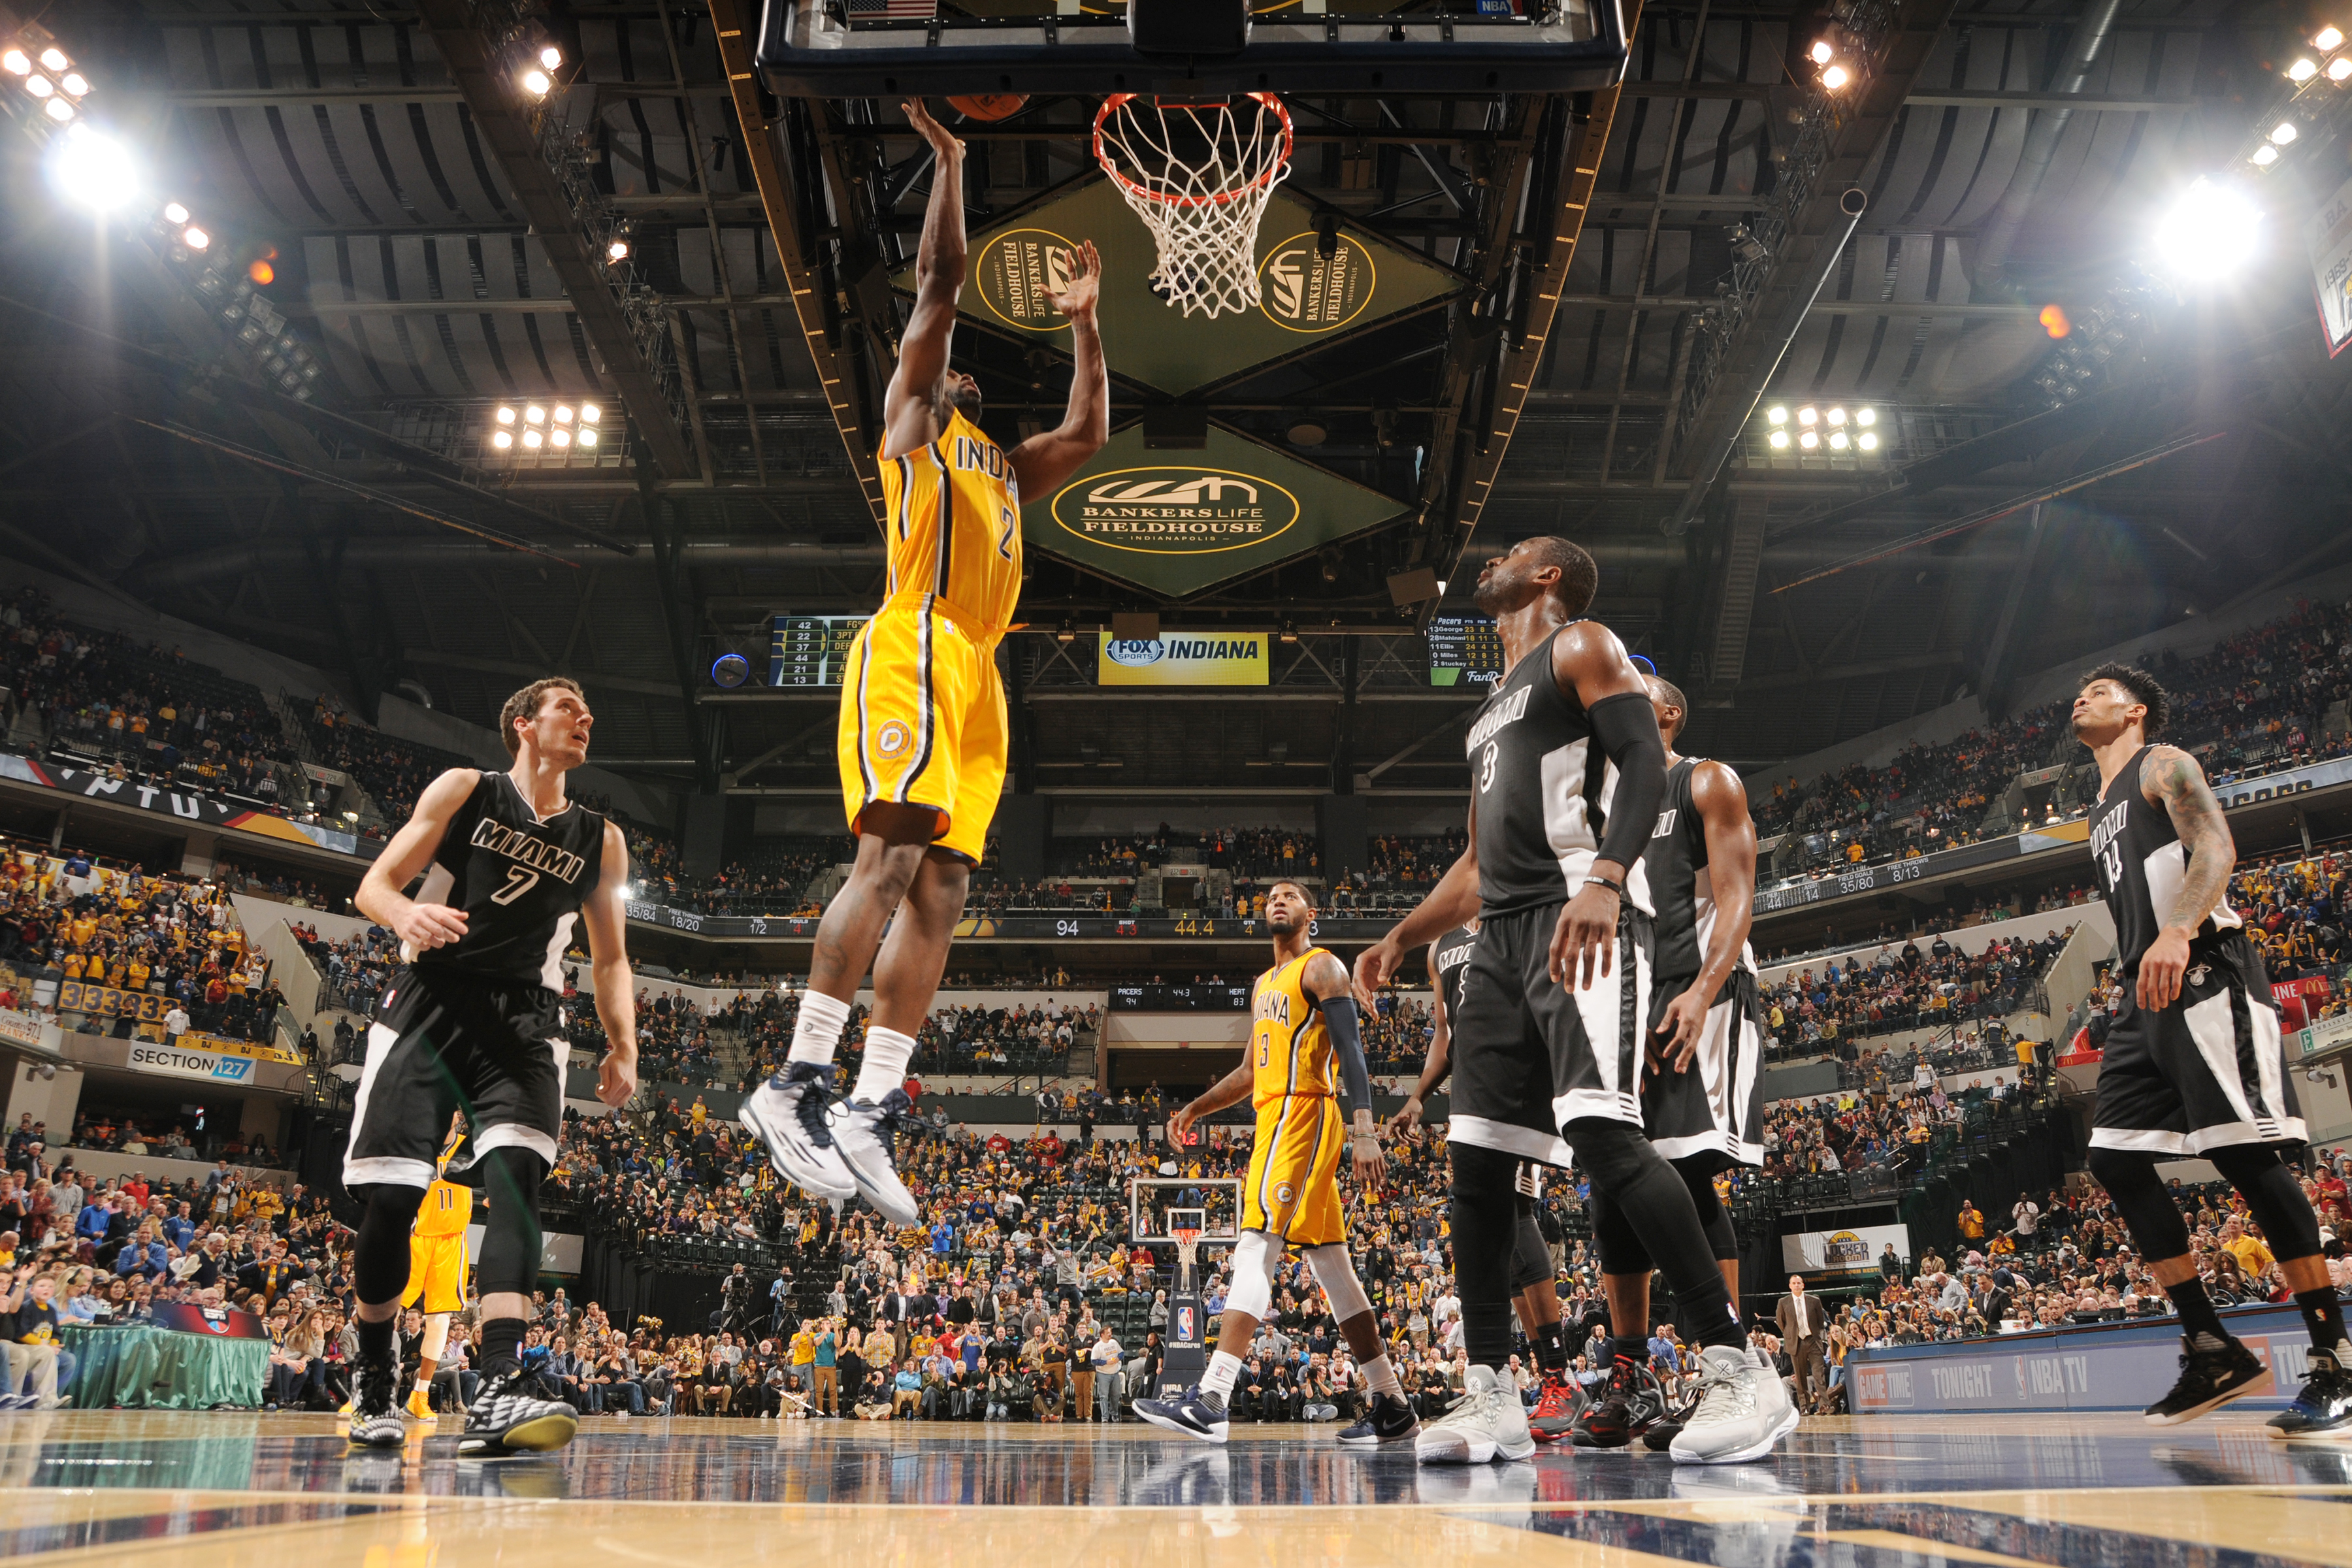 INDIANAPOLIS, IN - DECEMBER 11:  Rodney Stuckey #2 of the Indiana Pacers shoots the ball against the Miami Heat on December 11, 2015 at Bankers Life Fieldhouse in Indianapolis, Indiana. (Photo by Ron Hoskins/NBAE via Getty Images)